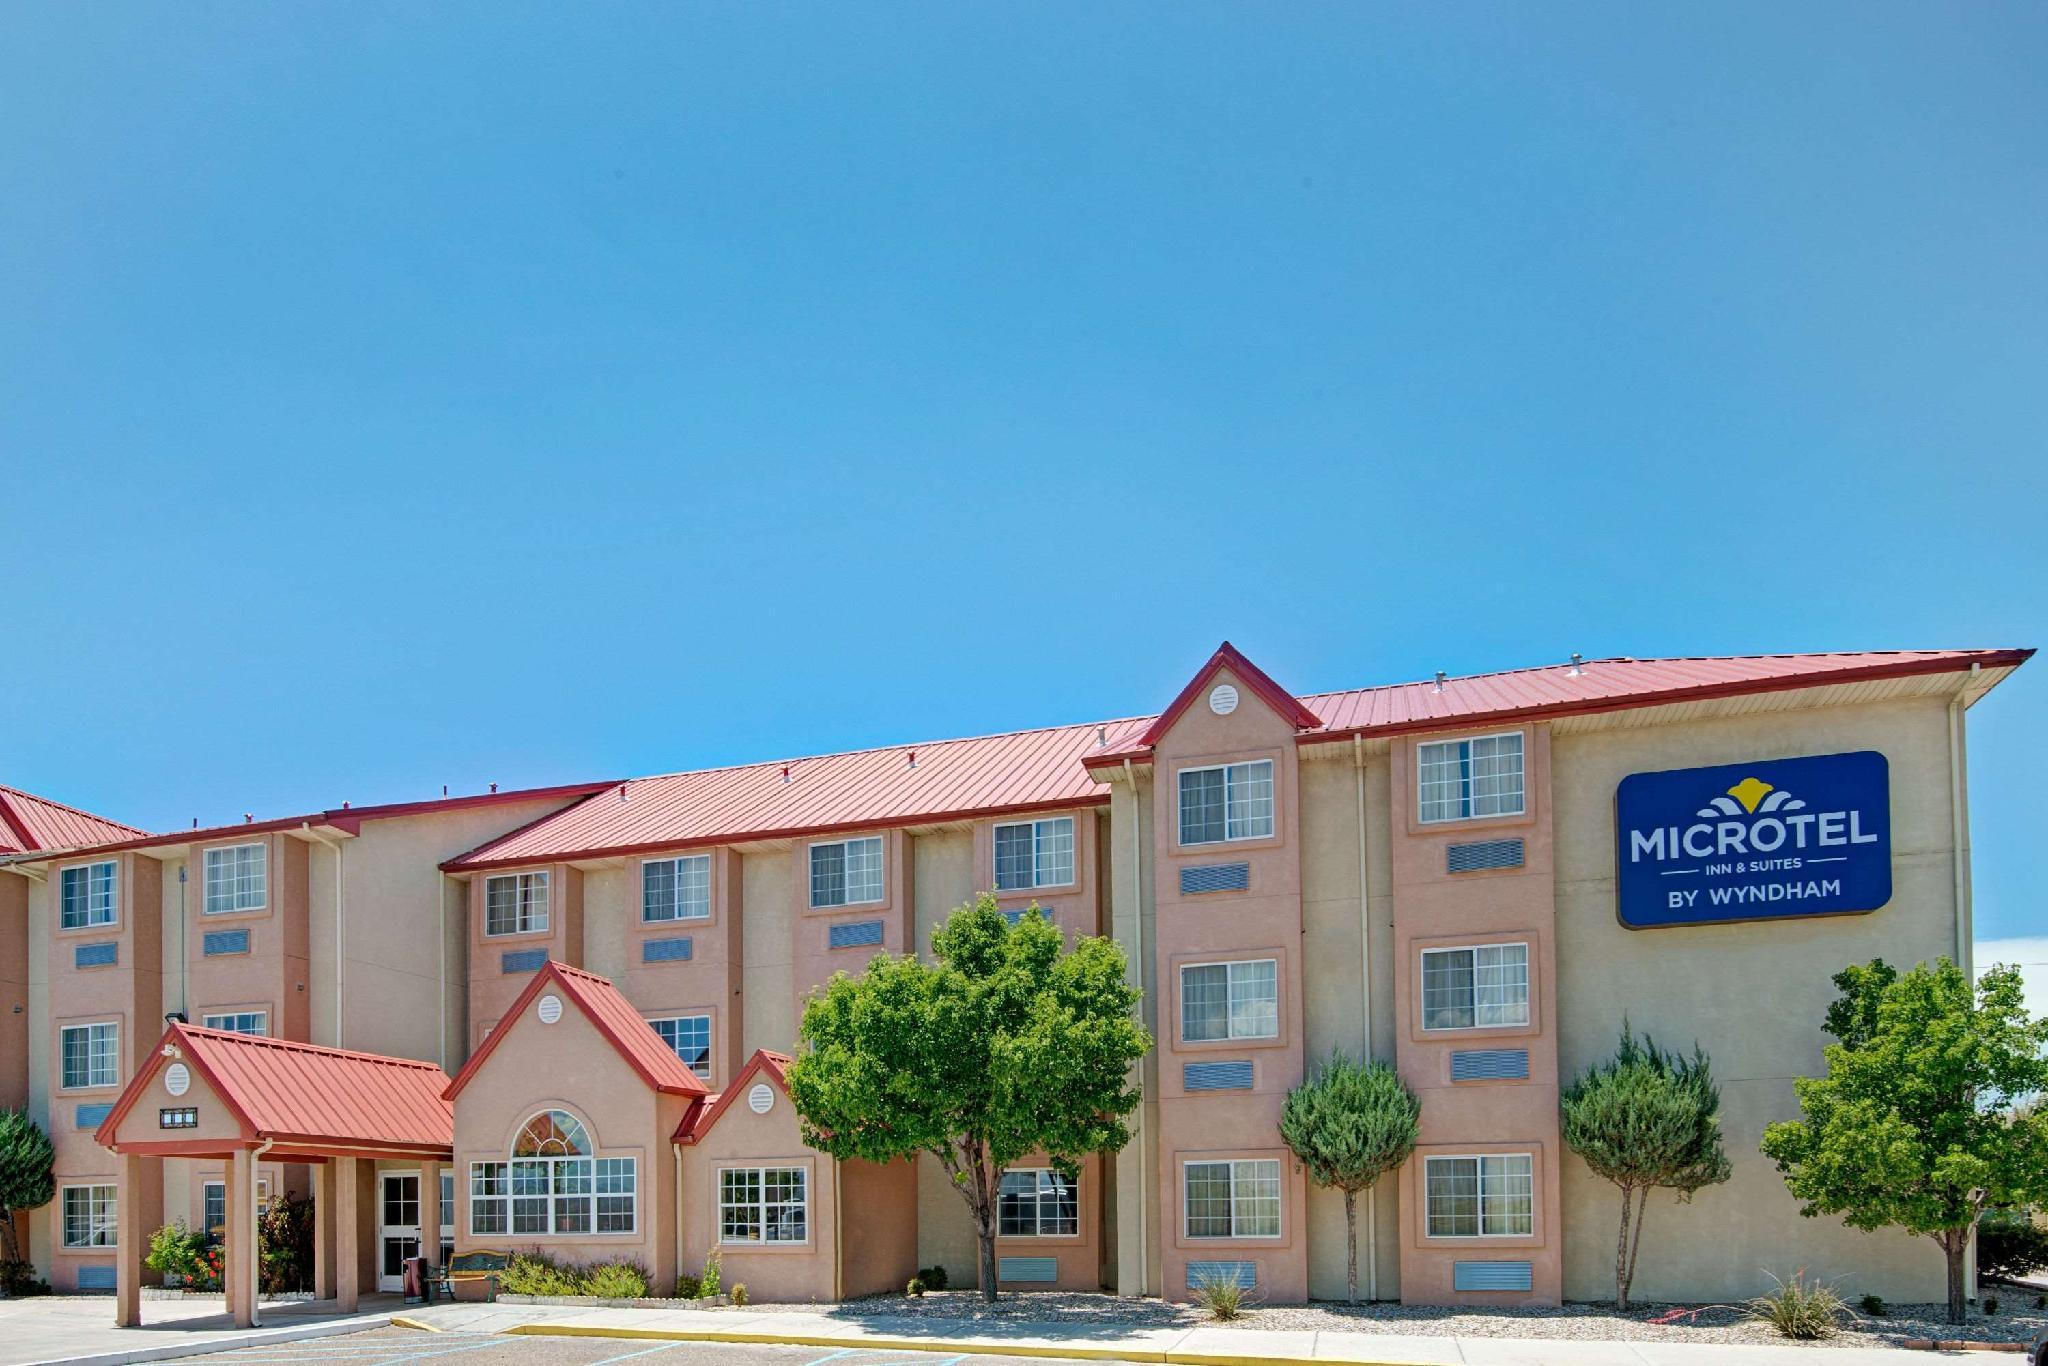 Microtel Inn And Suites By Wyndham Albuquerque West